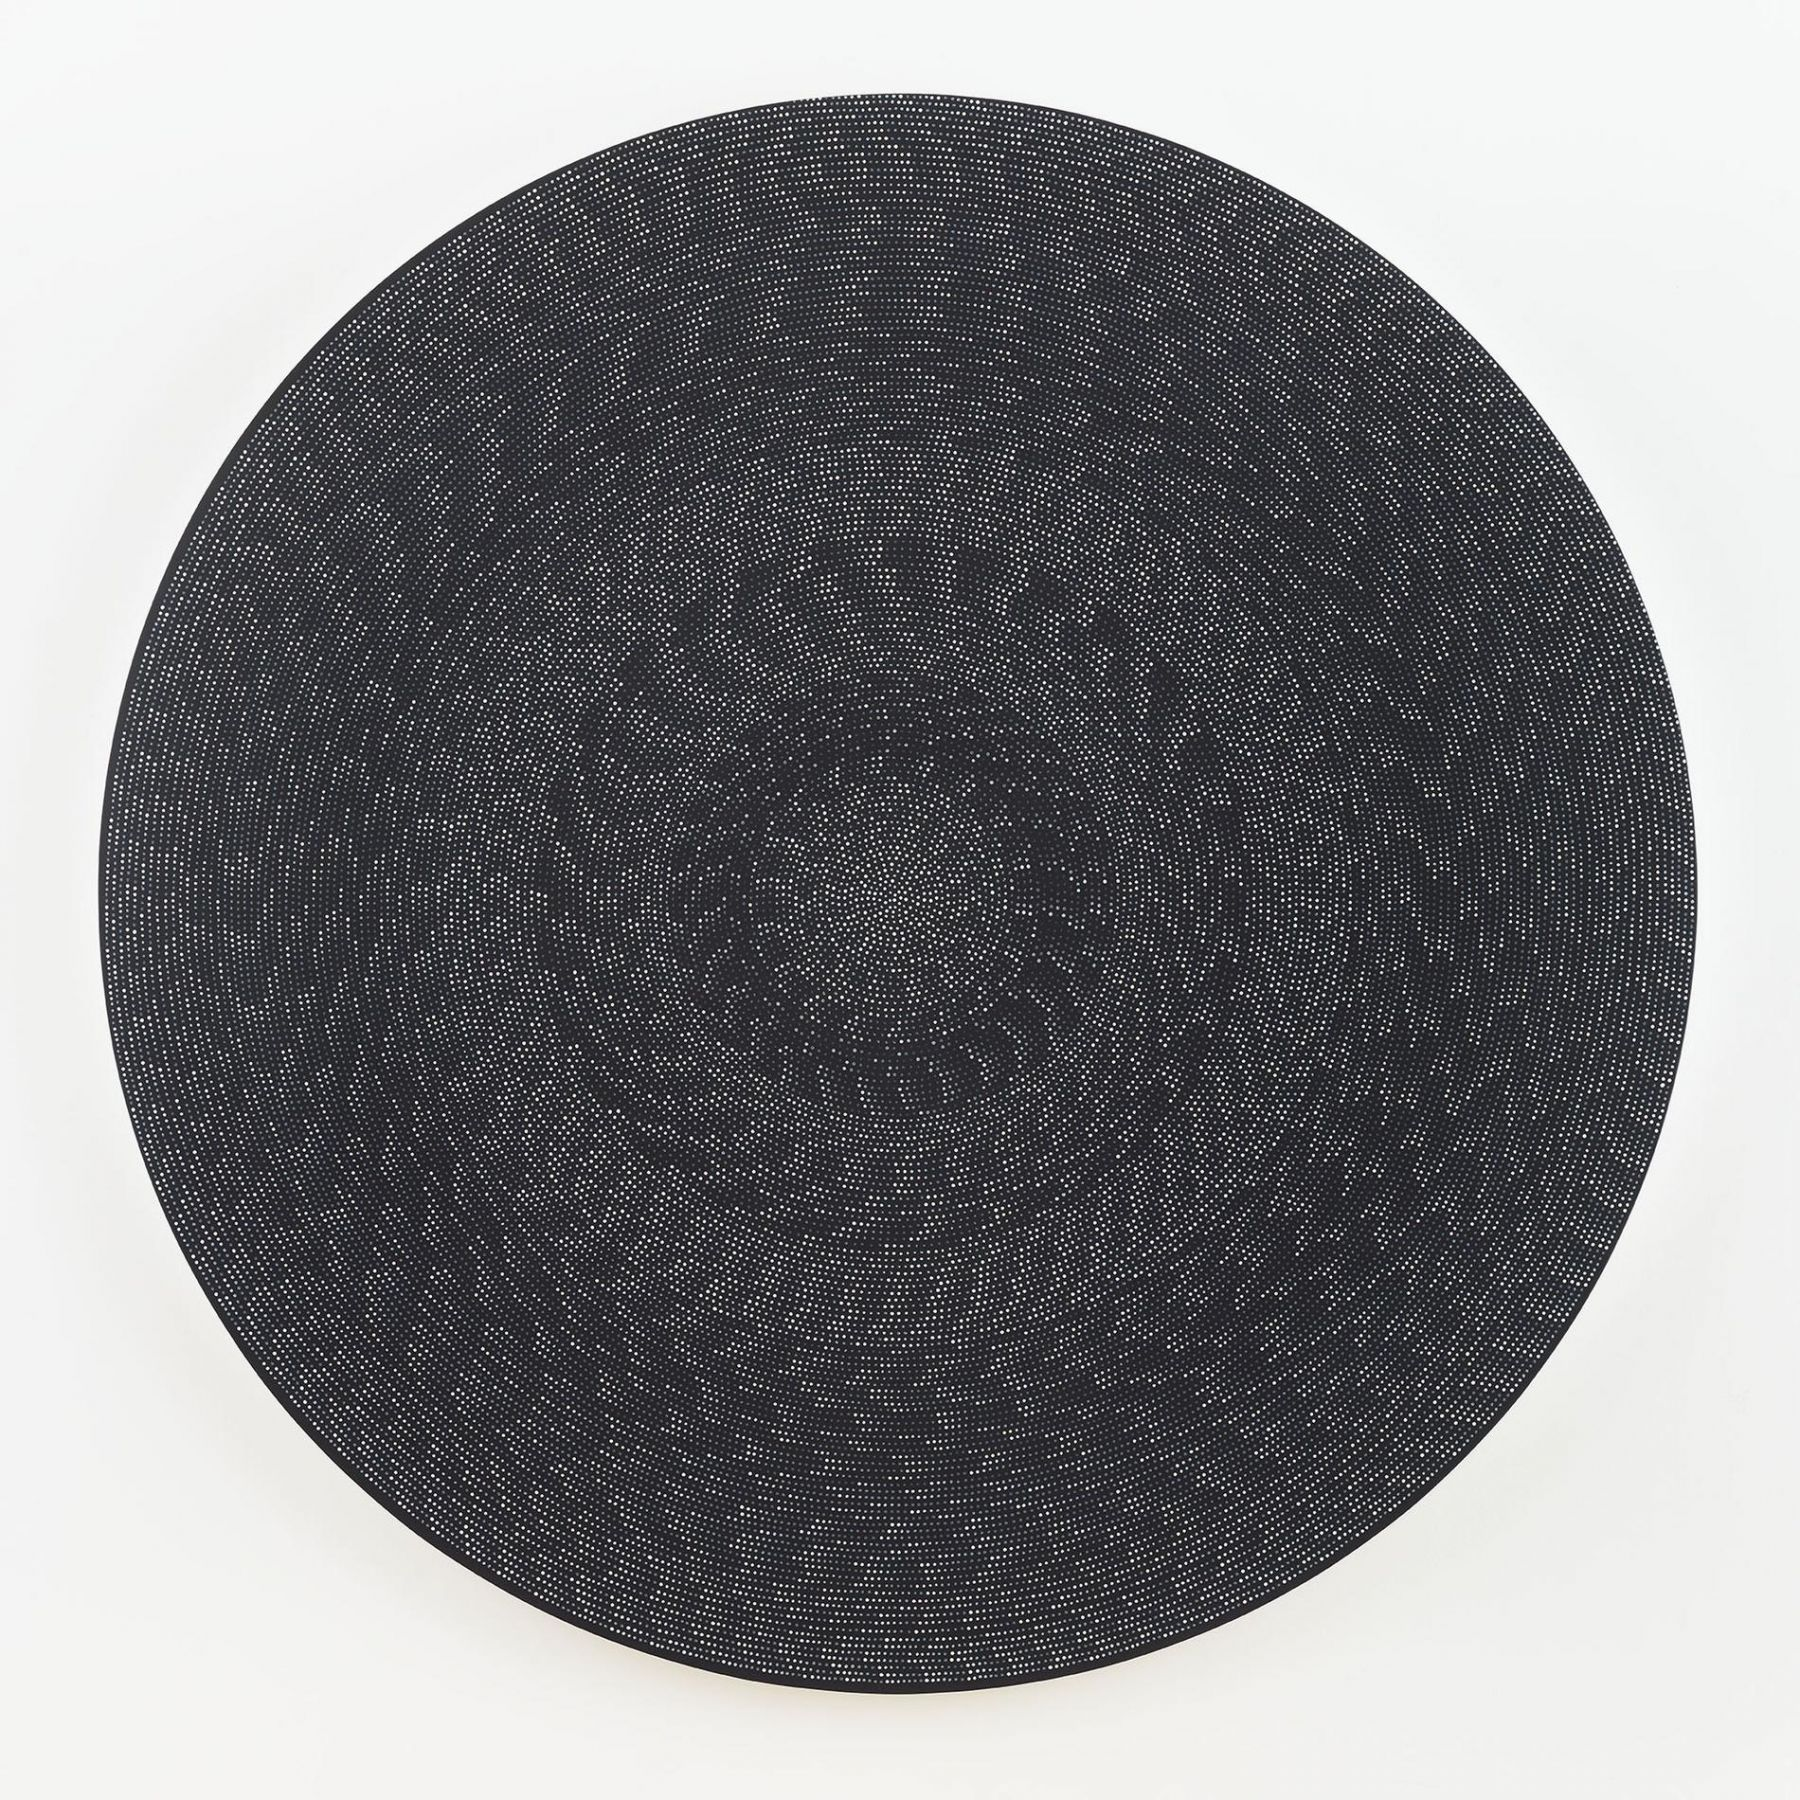 , MICHELLE GRABNER, Untitled, 2016, flashe and gesso on canvas, 80 in. (diameter) x 2 in.